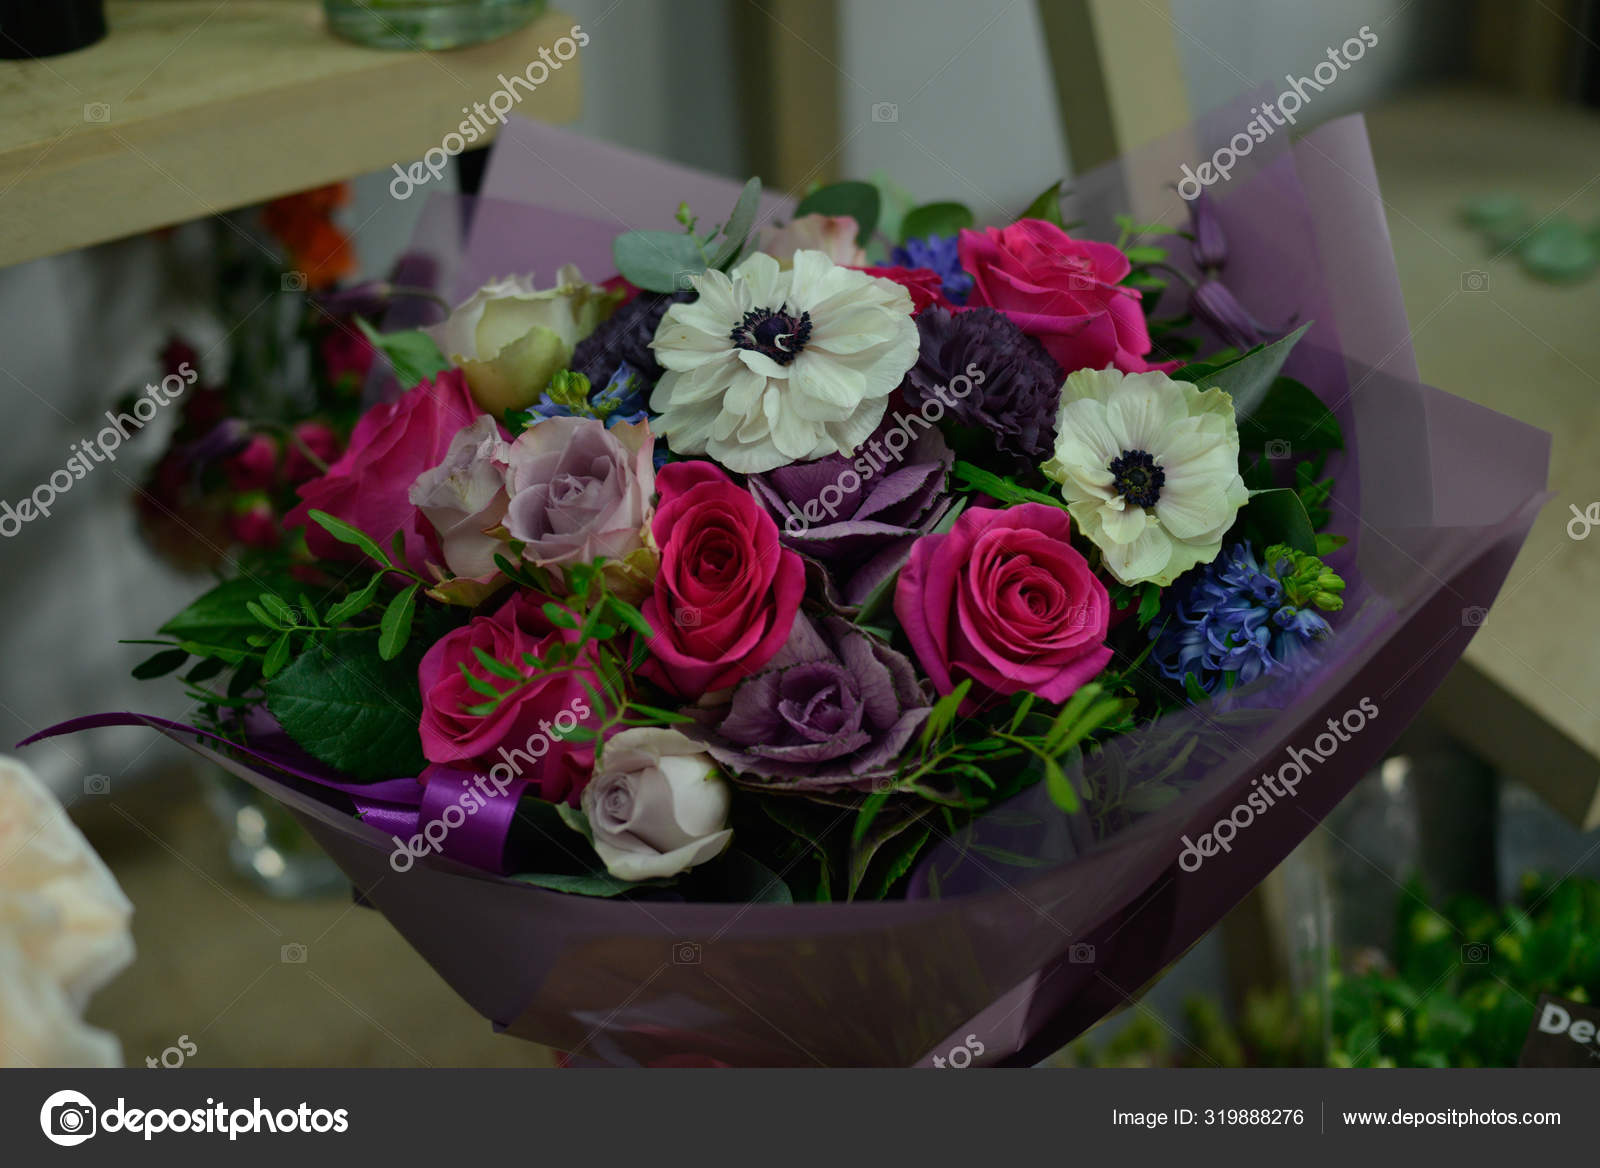 Bouquet Natural Fresh Flower Rose Anemone Buttercup Matthiola Tulip Eucalyptus Stock Photo Image By C Plan905 319888276